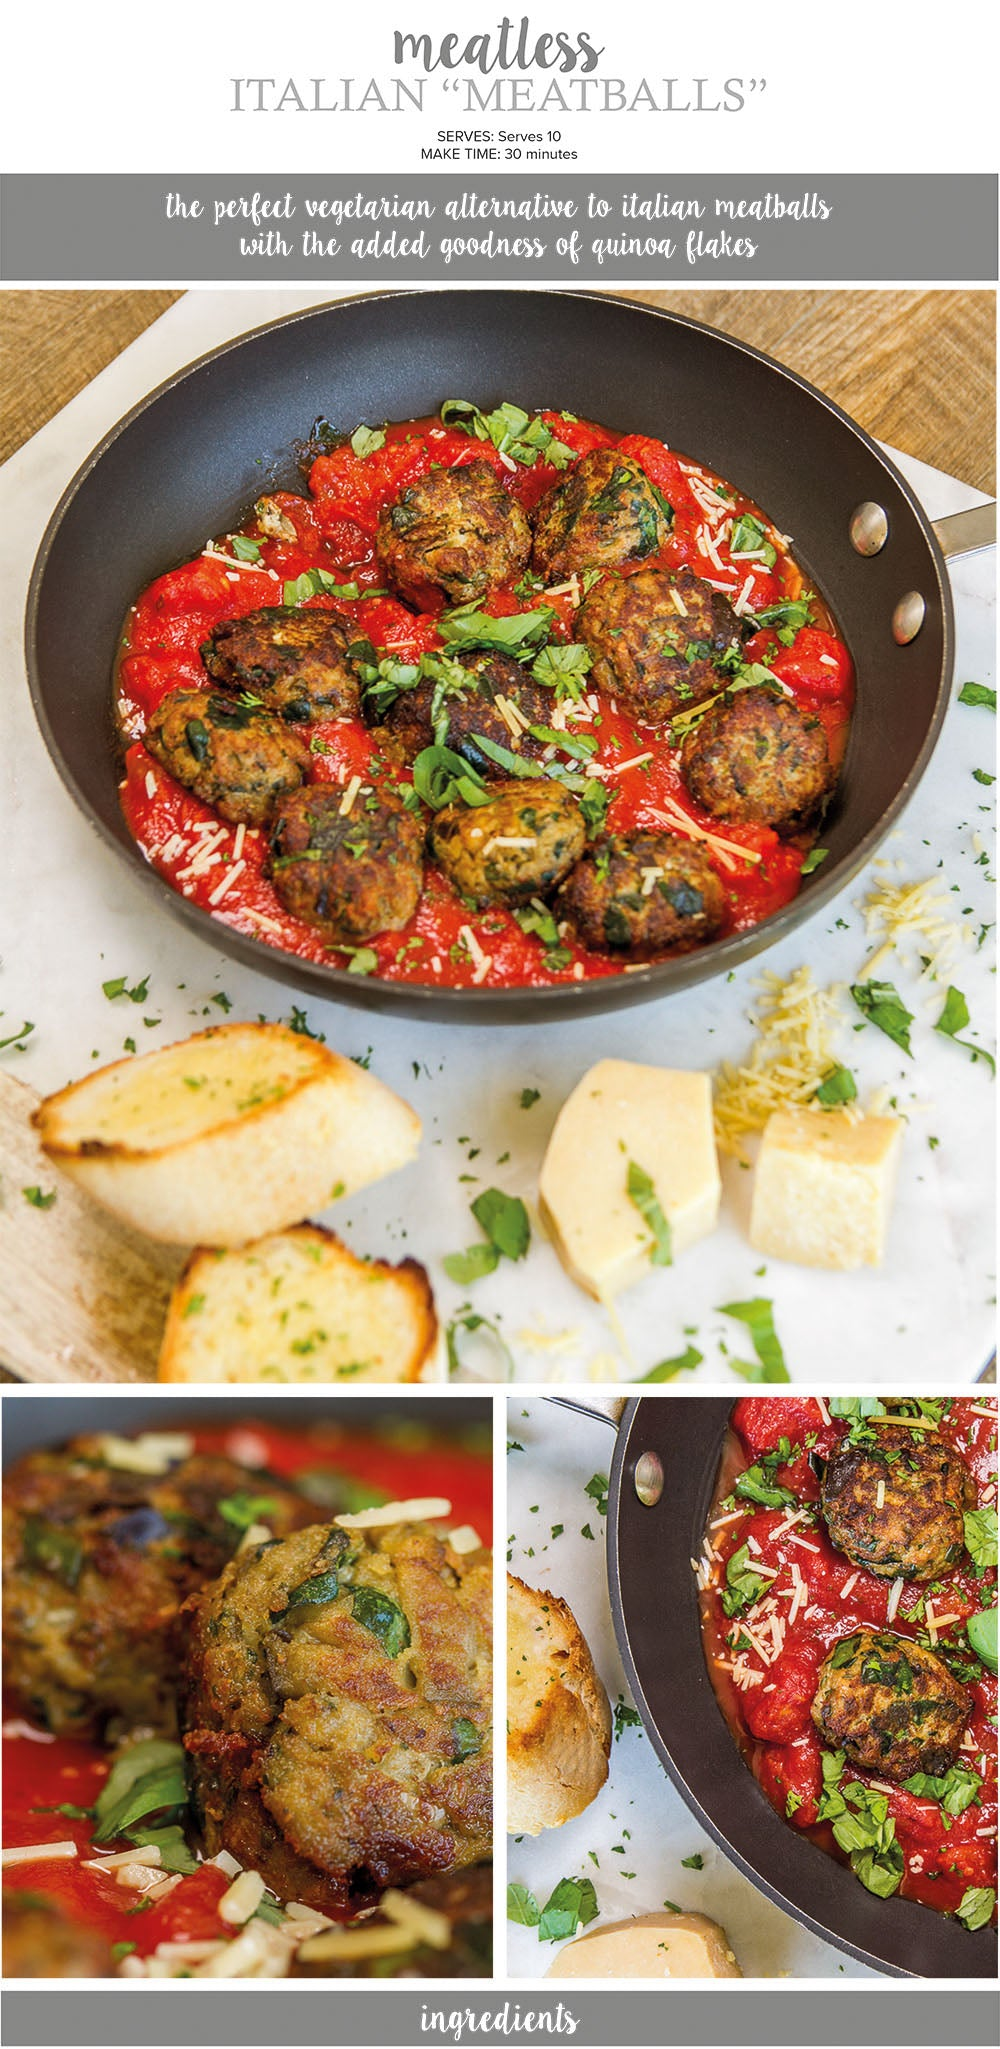 Meatless Italian Meatballs Recipe